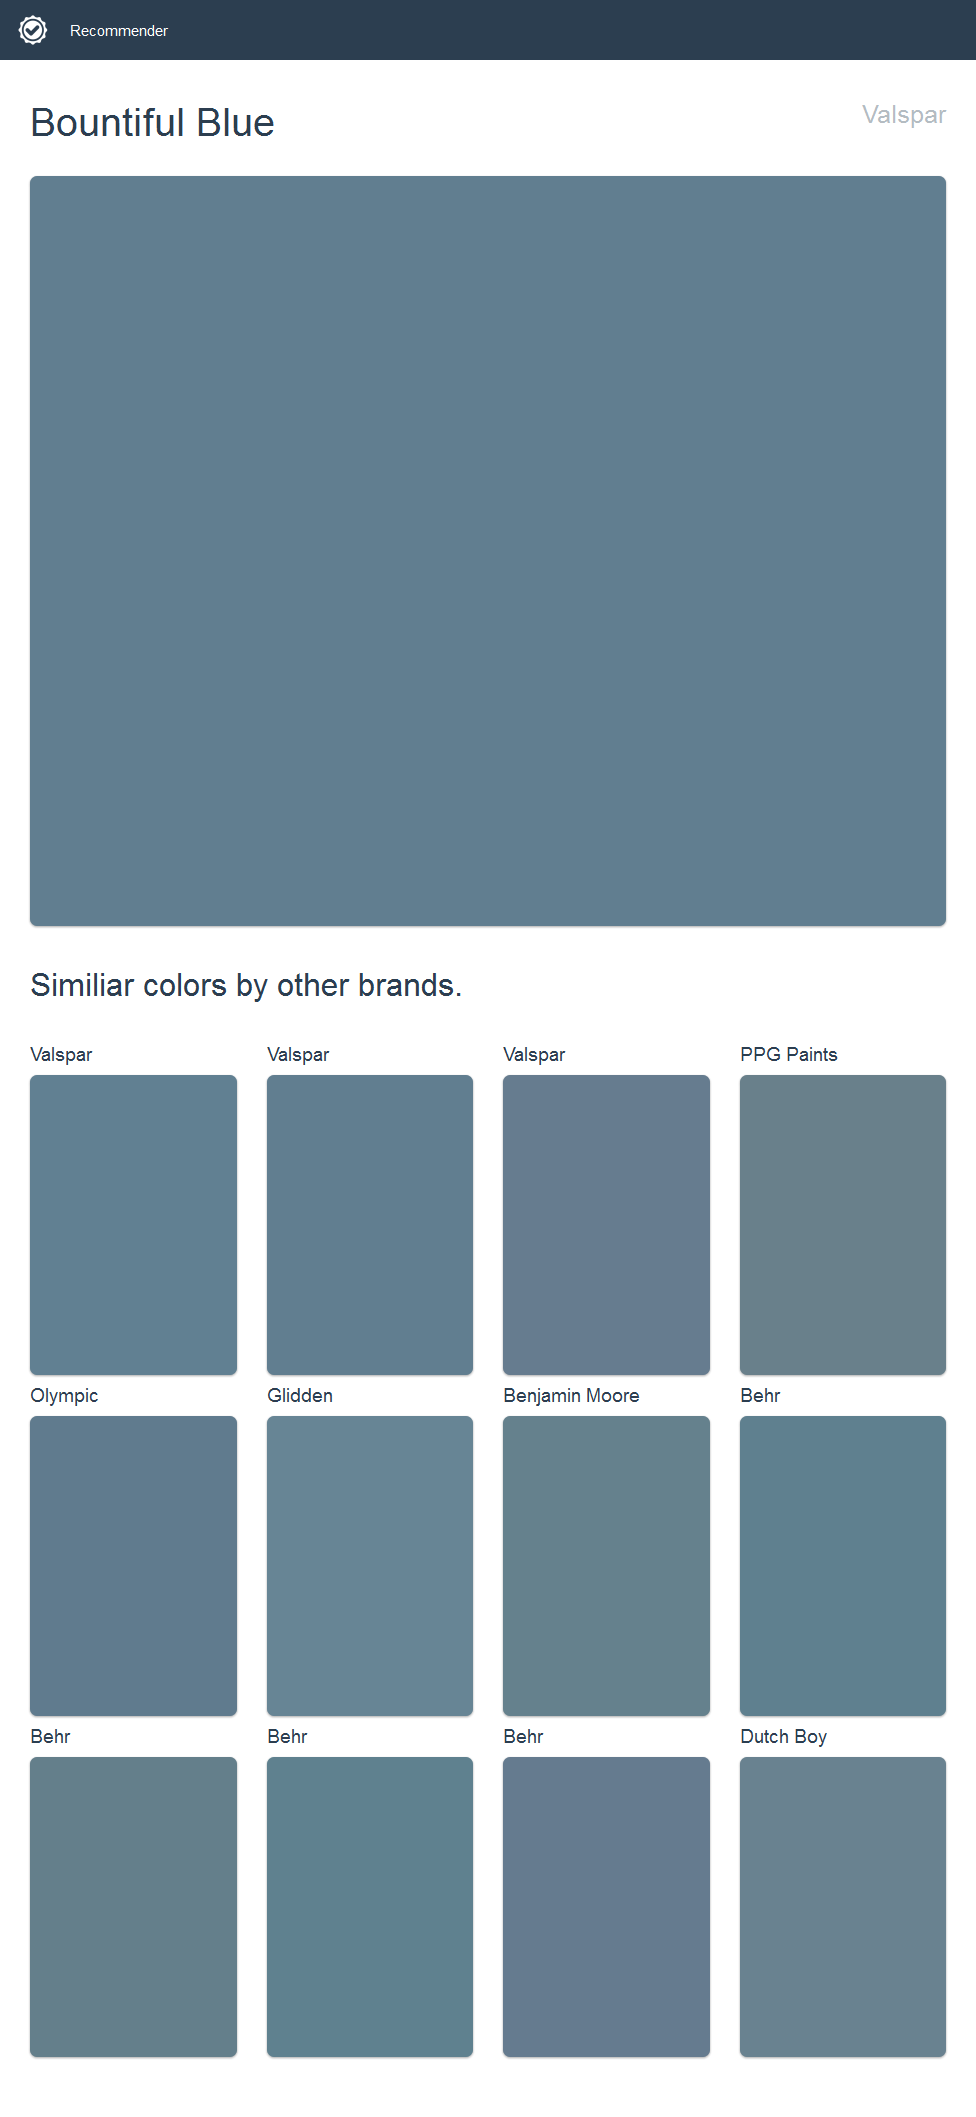 Bountiful Blue, Valspar. | 2017 - Valspar Paint | Pinterest ...